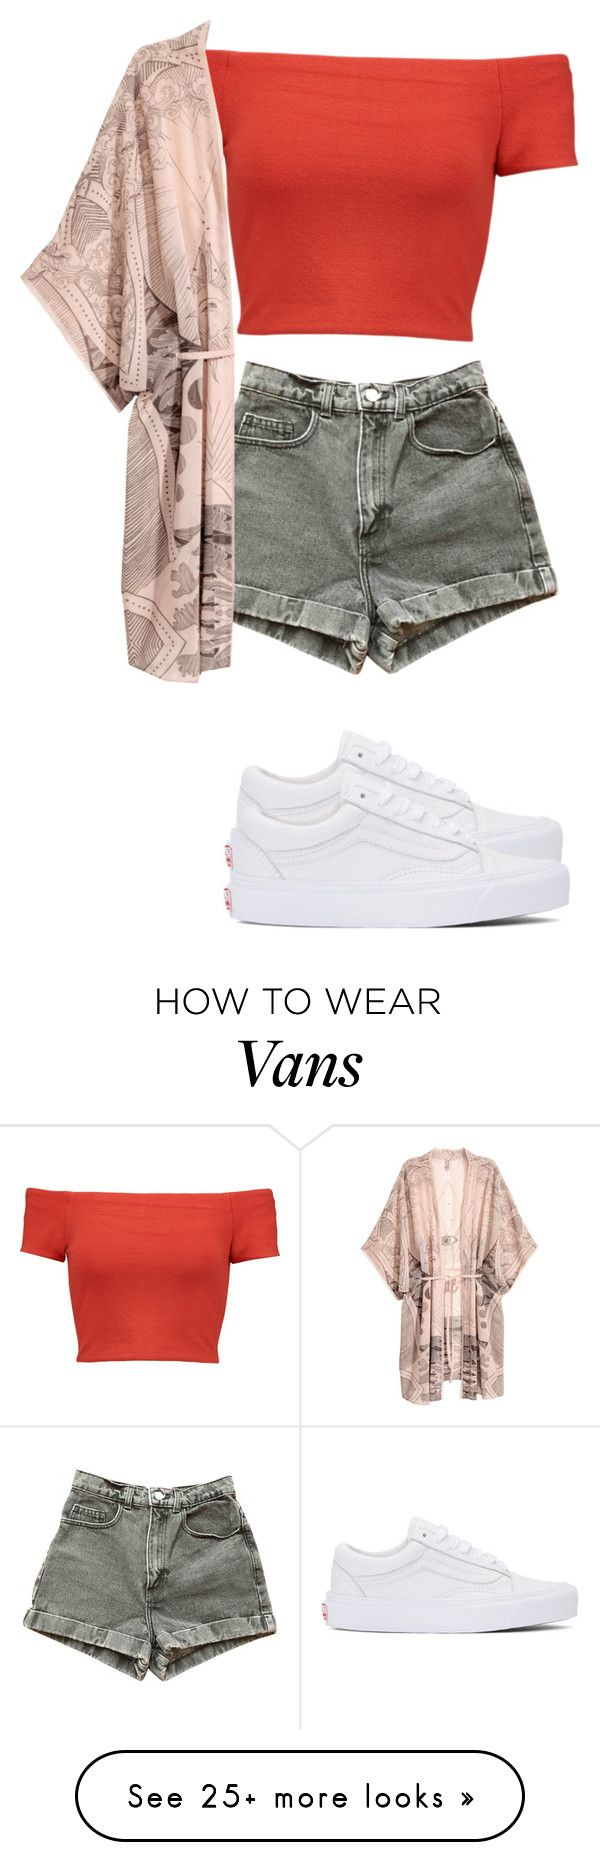 """""""Untitled #318"""" by xoxotiffvni on Polyvore featuring Alice + Olivia, American Apparel and Vans"""